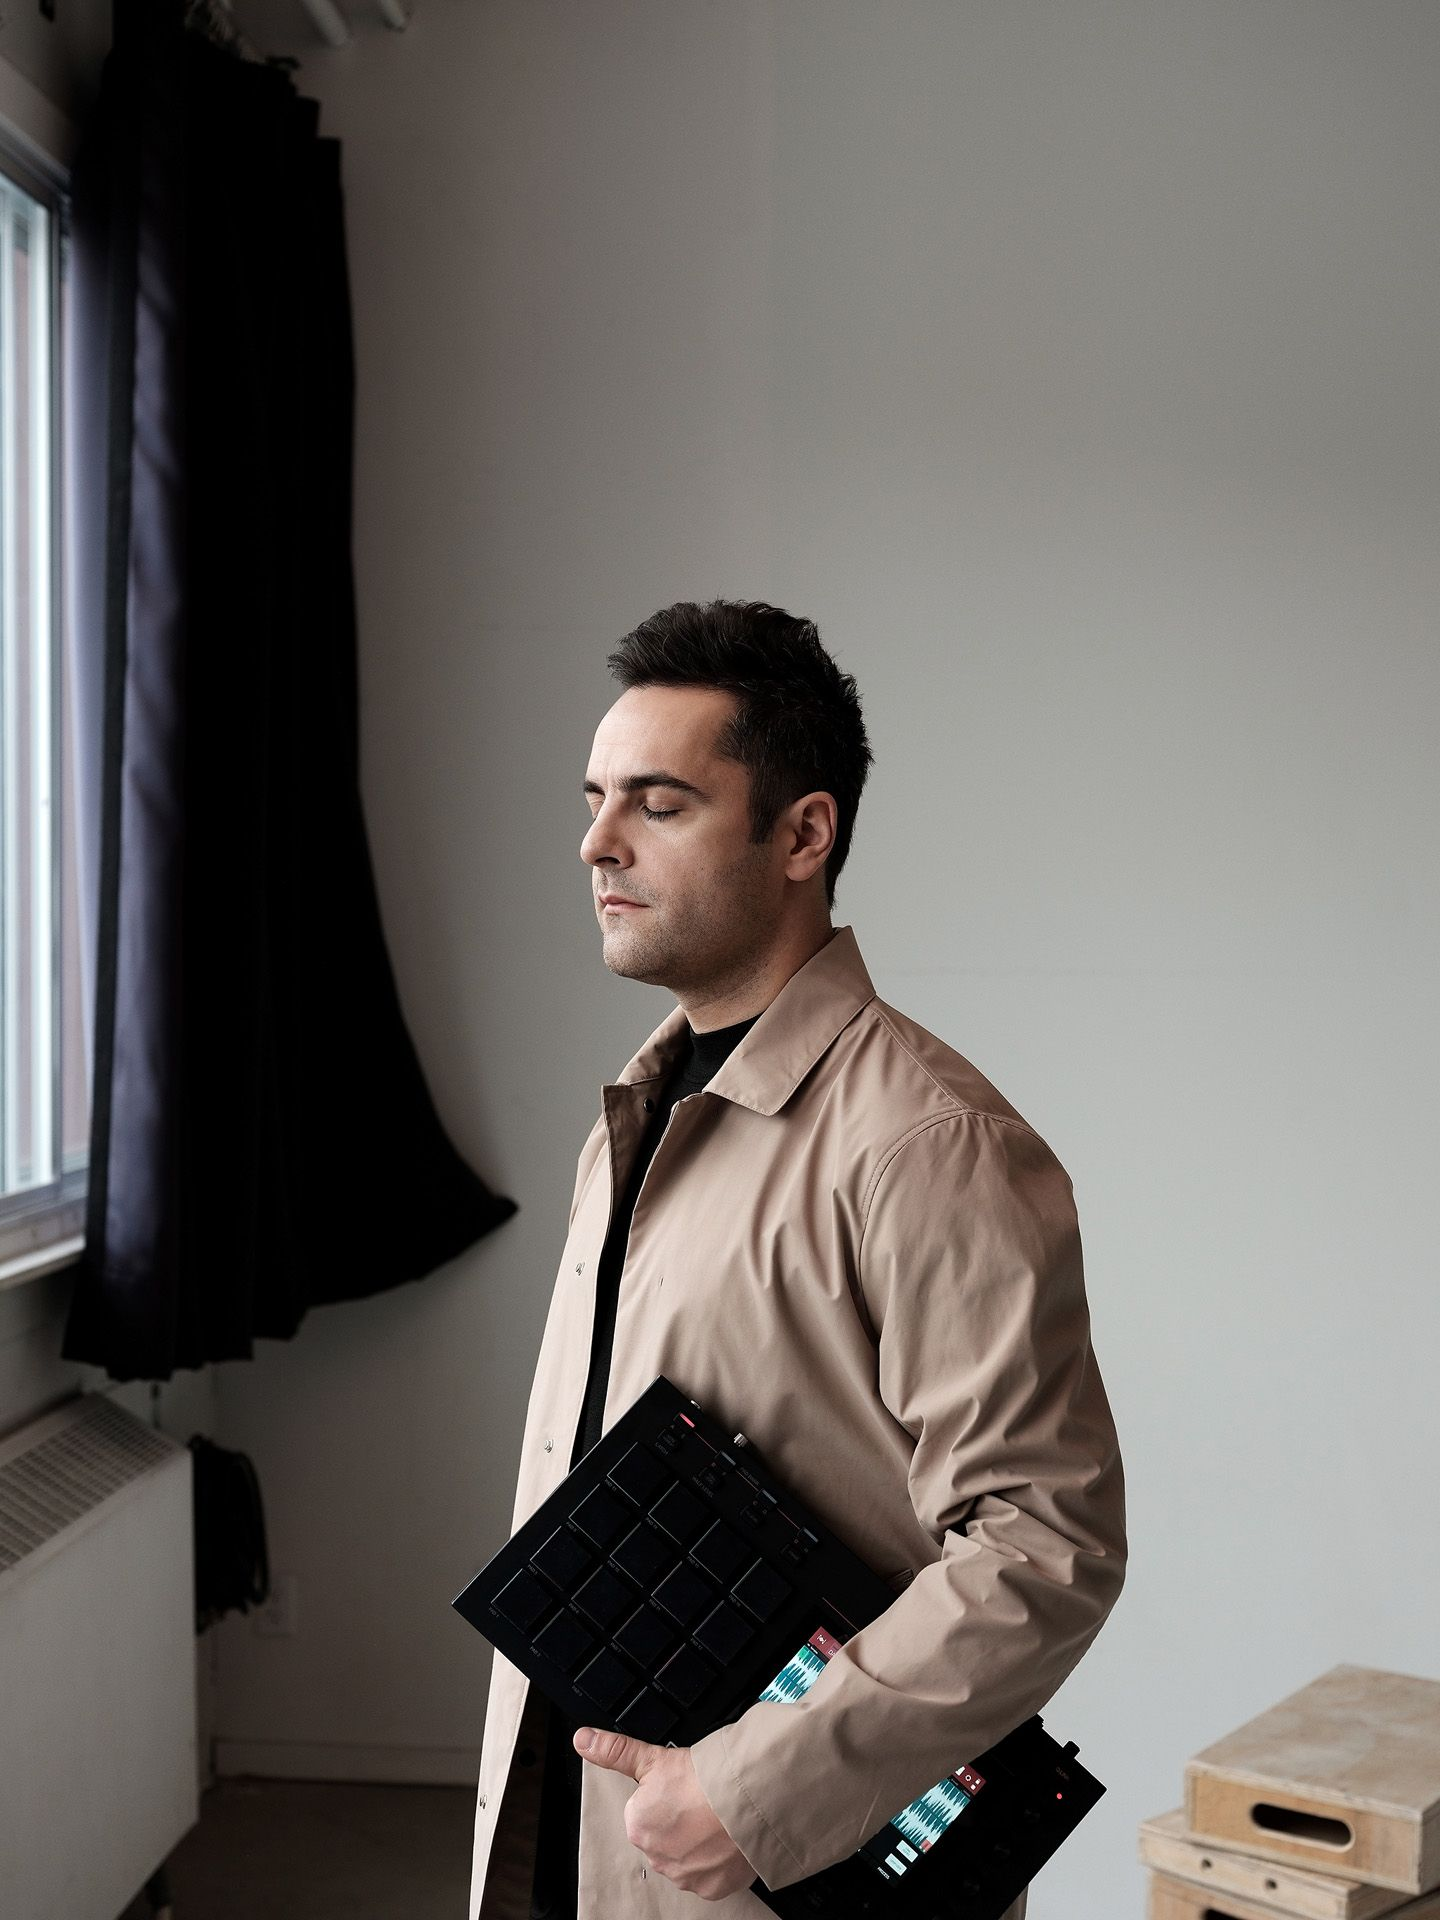 close up of singer Dumas facing a window with his eyes closed holding a synthetiser wearing light brown coat with black shirt photographed in studio by Guillaume Simoneau for Voir's magazine covers